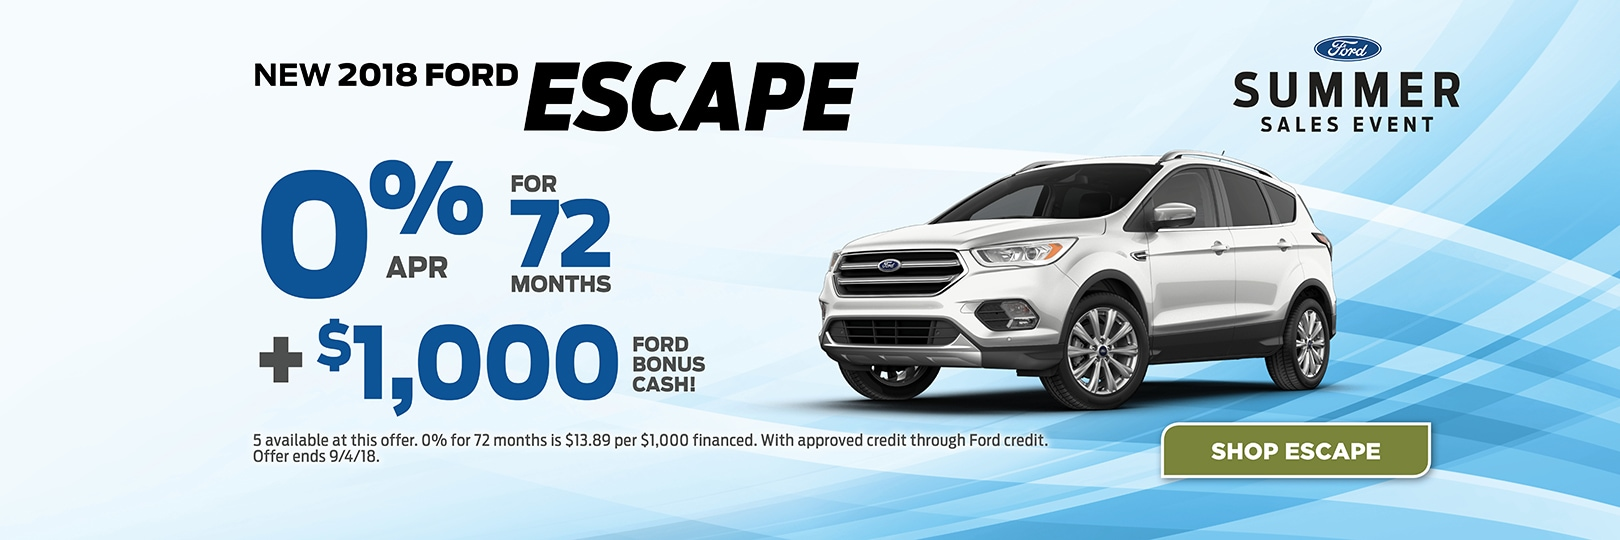 Perry Ford of National City | Ford Dealership in National City CA